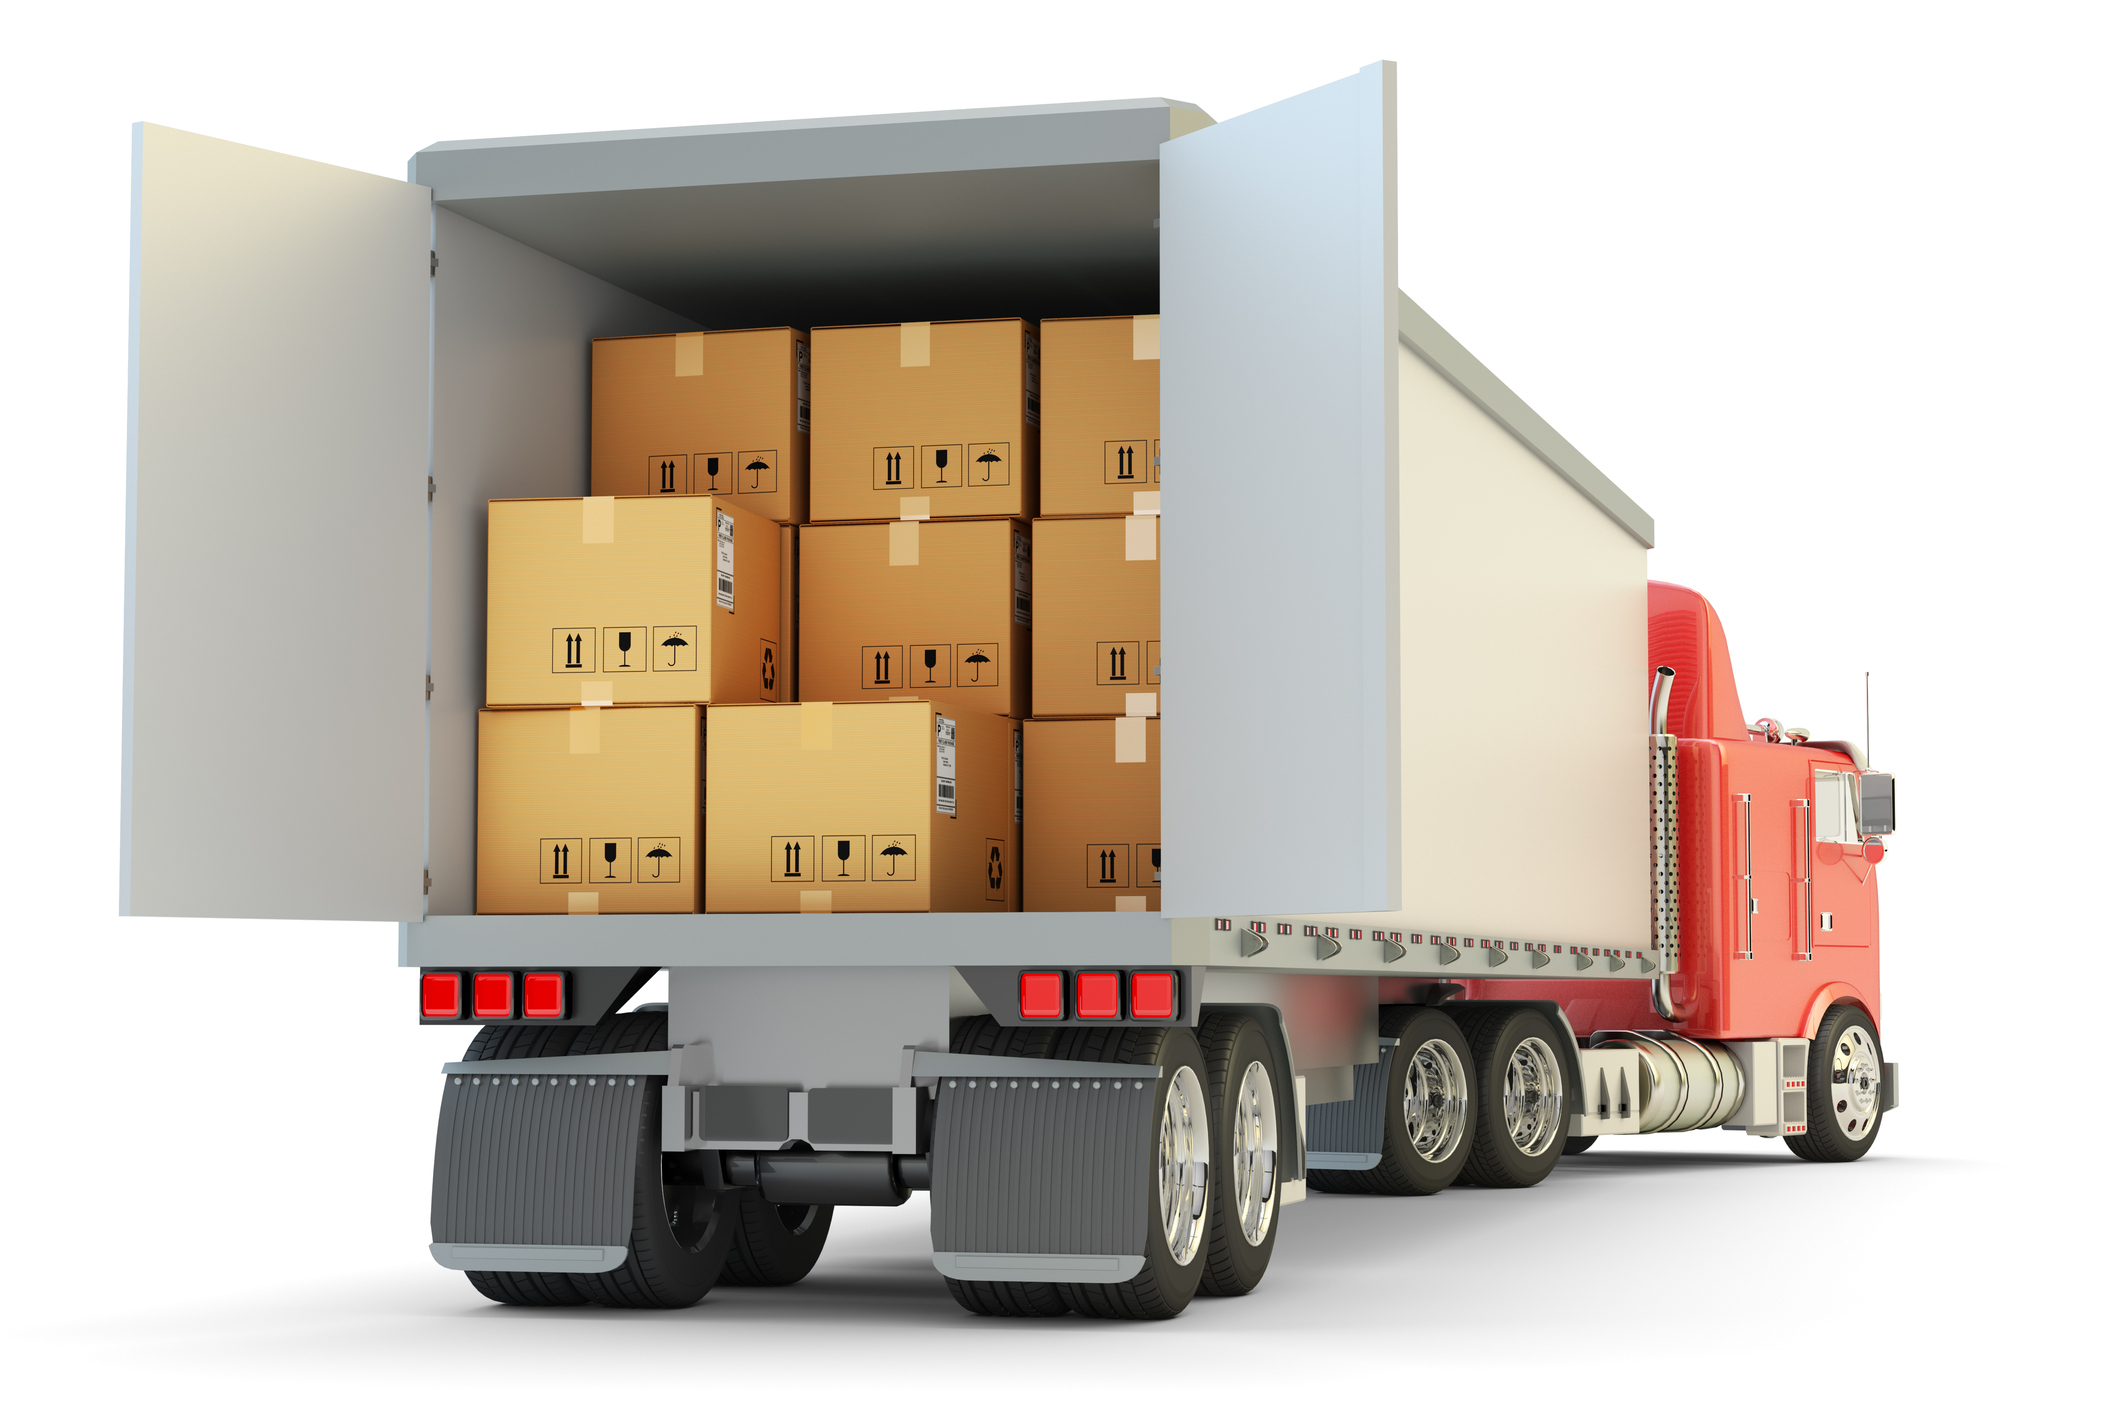 Truck cargo theft might be especially high this 4th of July